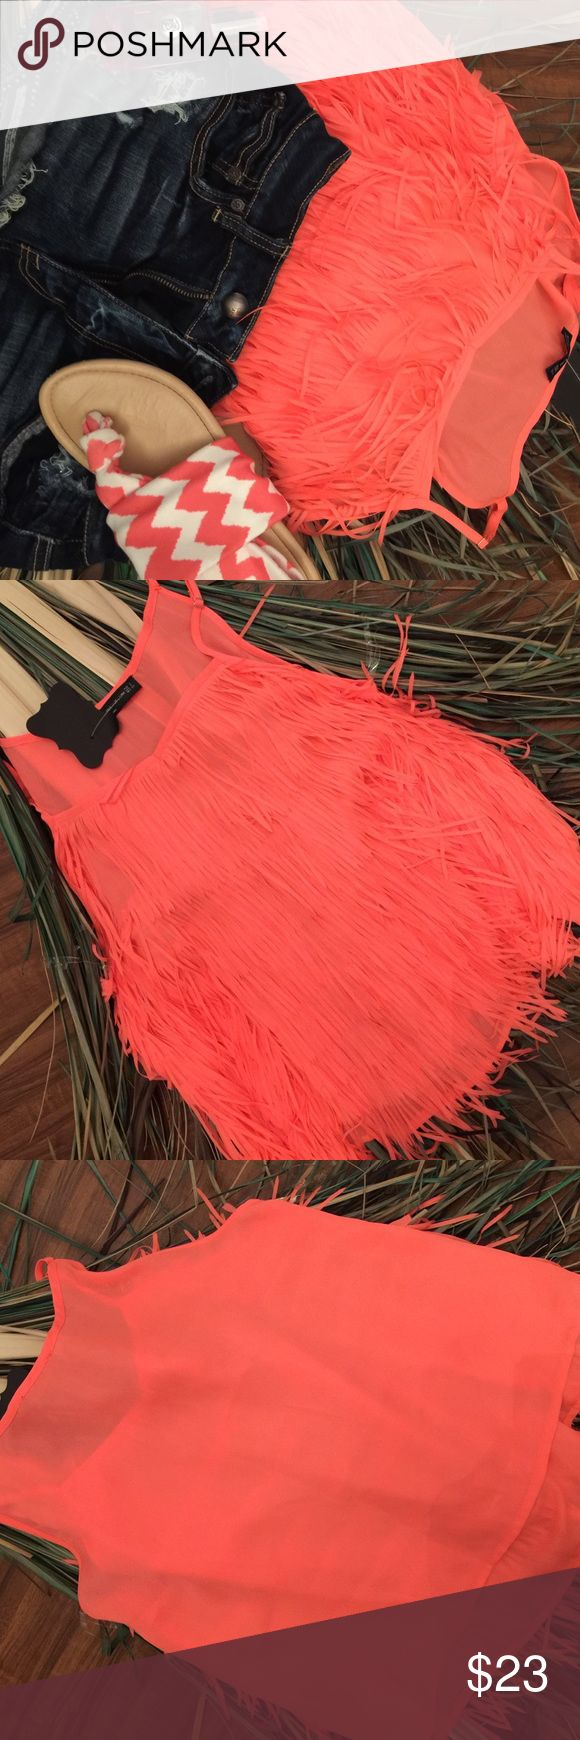 Gorgeous Fringe Top NWT coral colored fringed top that is absolutely adorable💓 says size is small but looks more like Sm/Med Tops